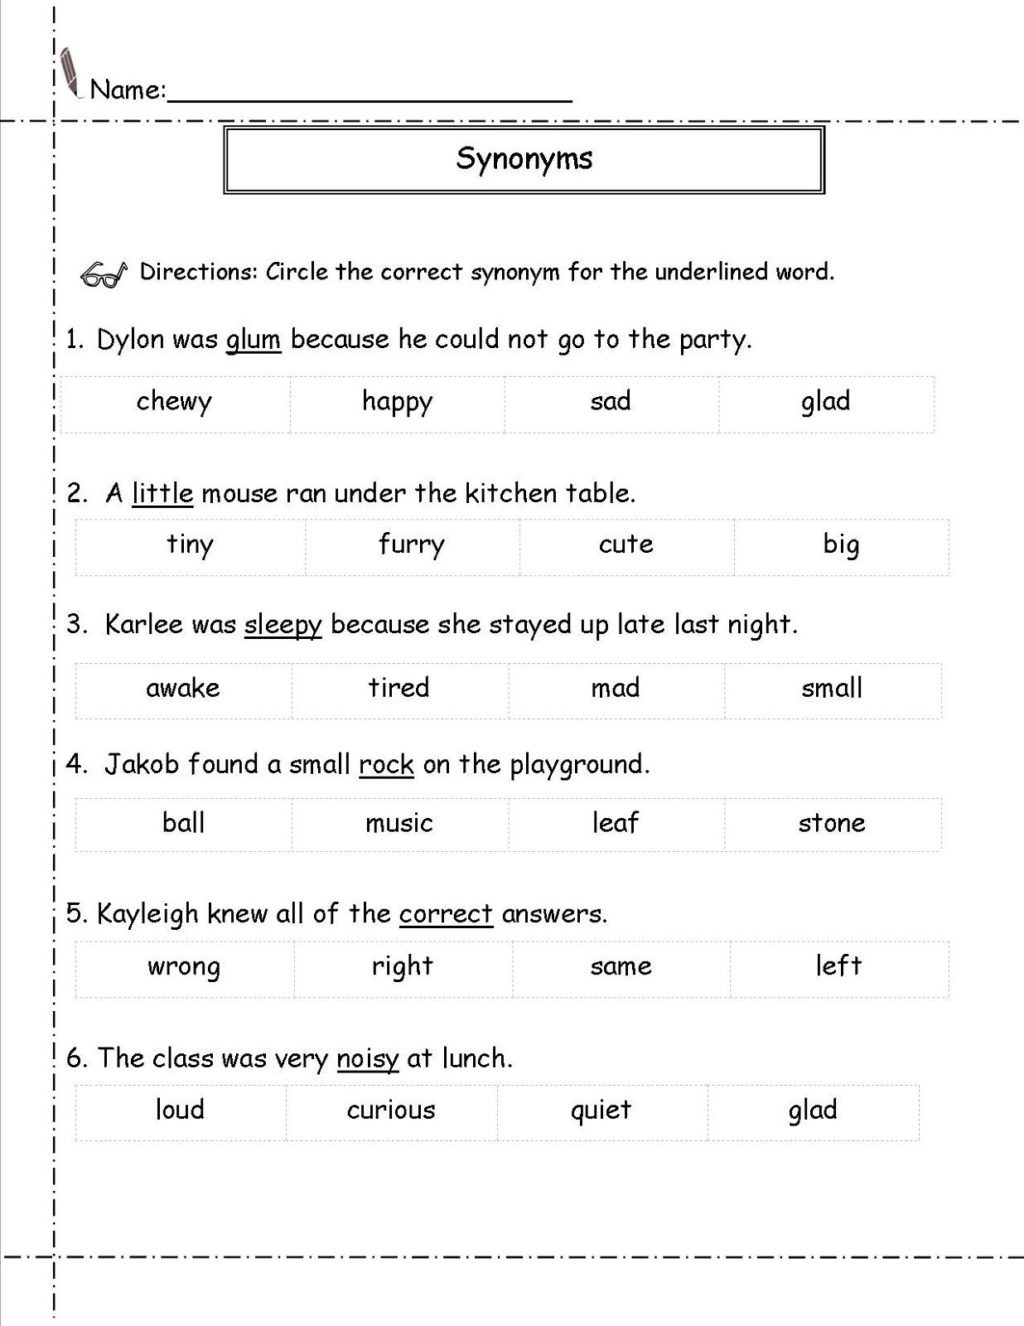 Synonyms Worksheet First Grade Worksheet Second Grades Synonym Learning Printable